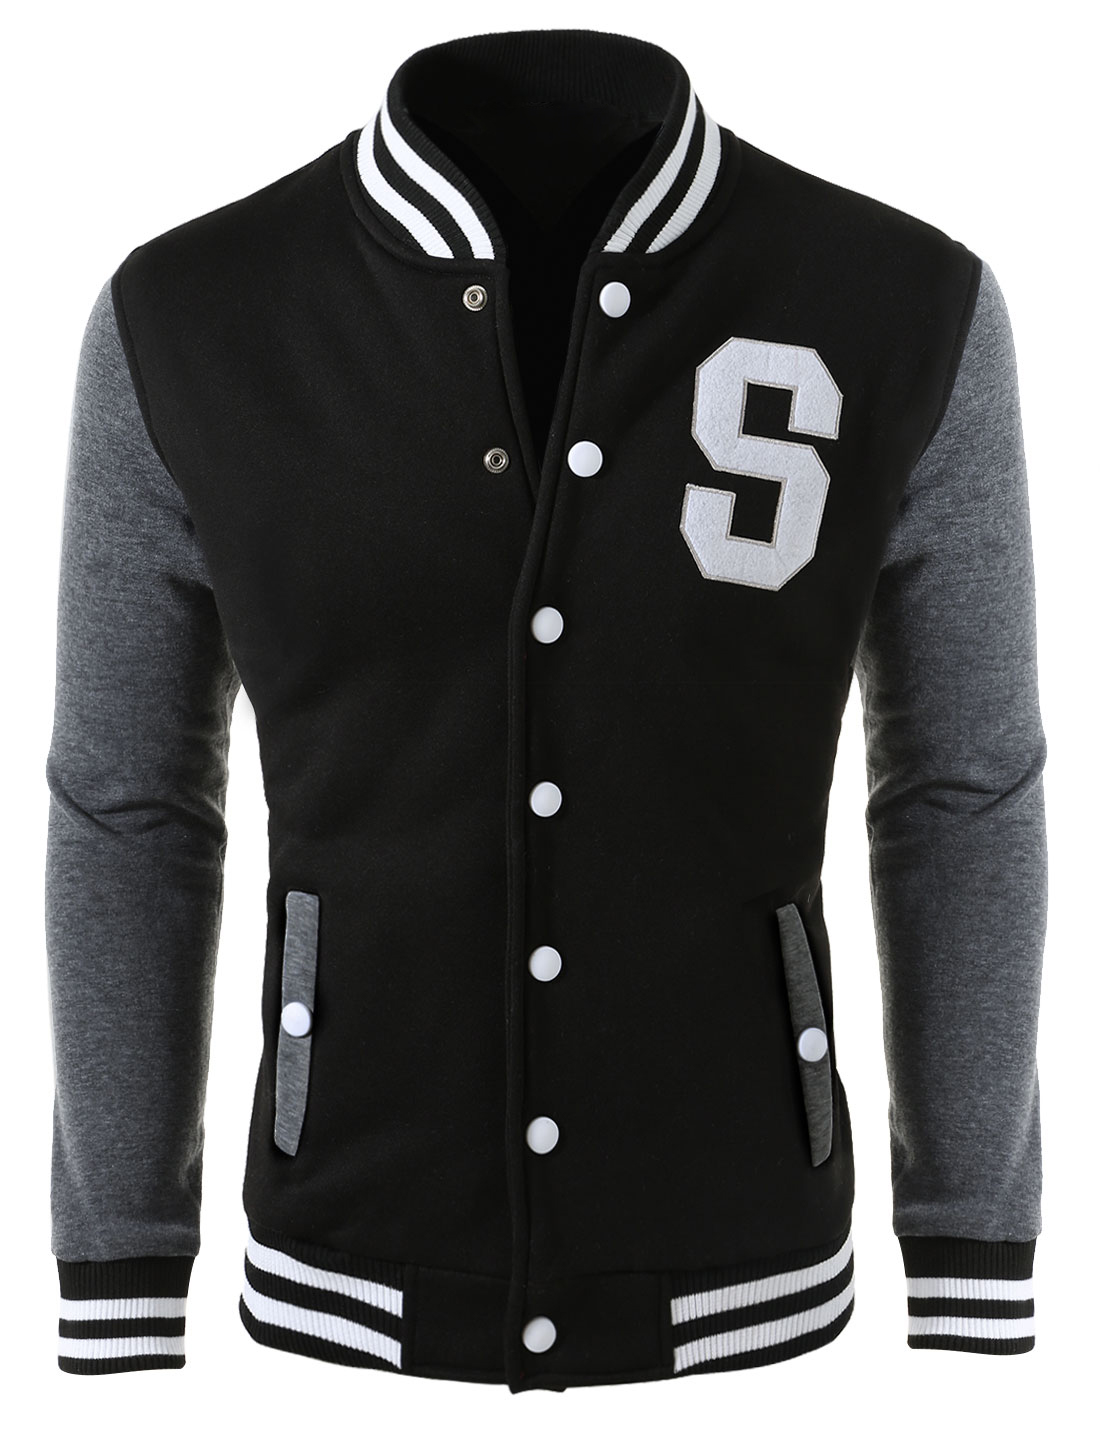 Men Stand Collar Long Sleeve Snap Buttons Letteman Jacket Black S